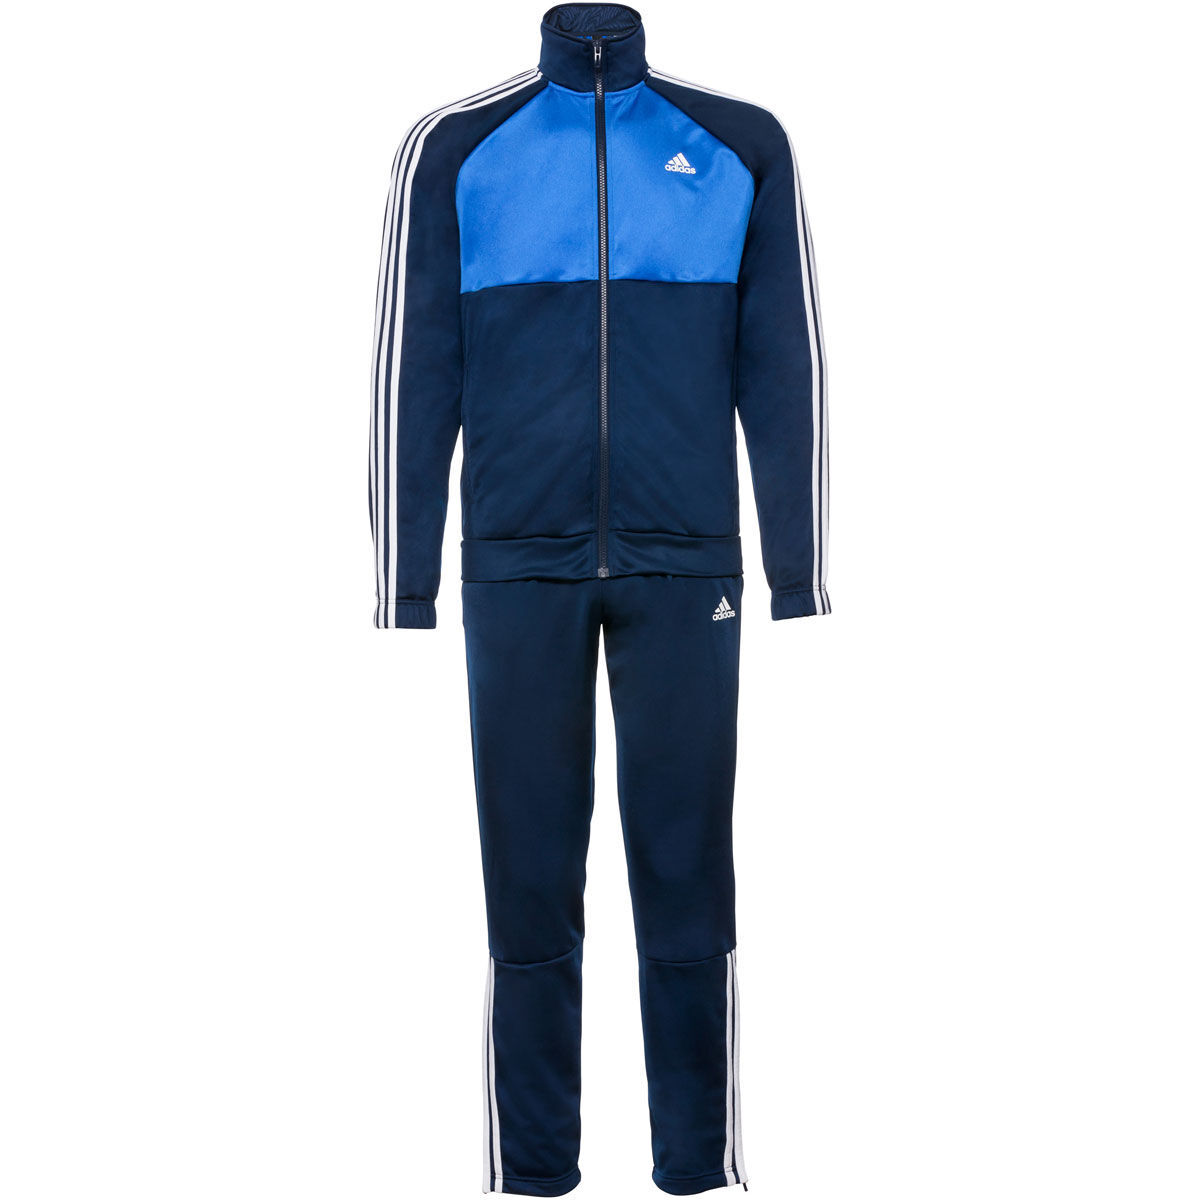 adidas herren trainingsanzug blau m karstadt online shop. Black Bedroom Furniture Sets. Home Design Ideas